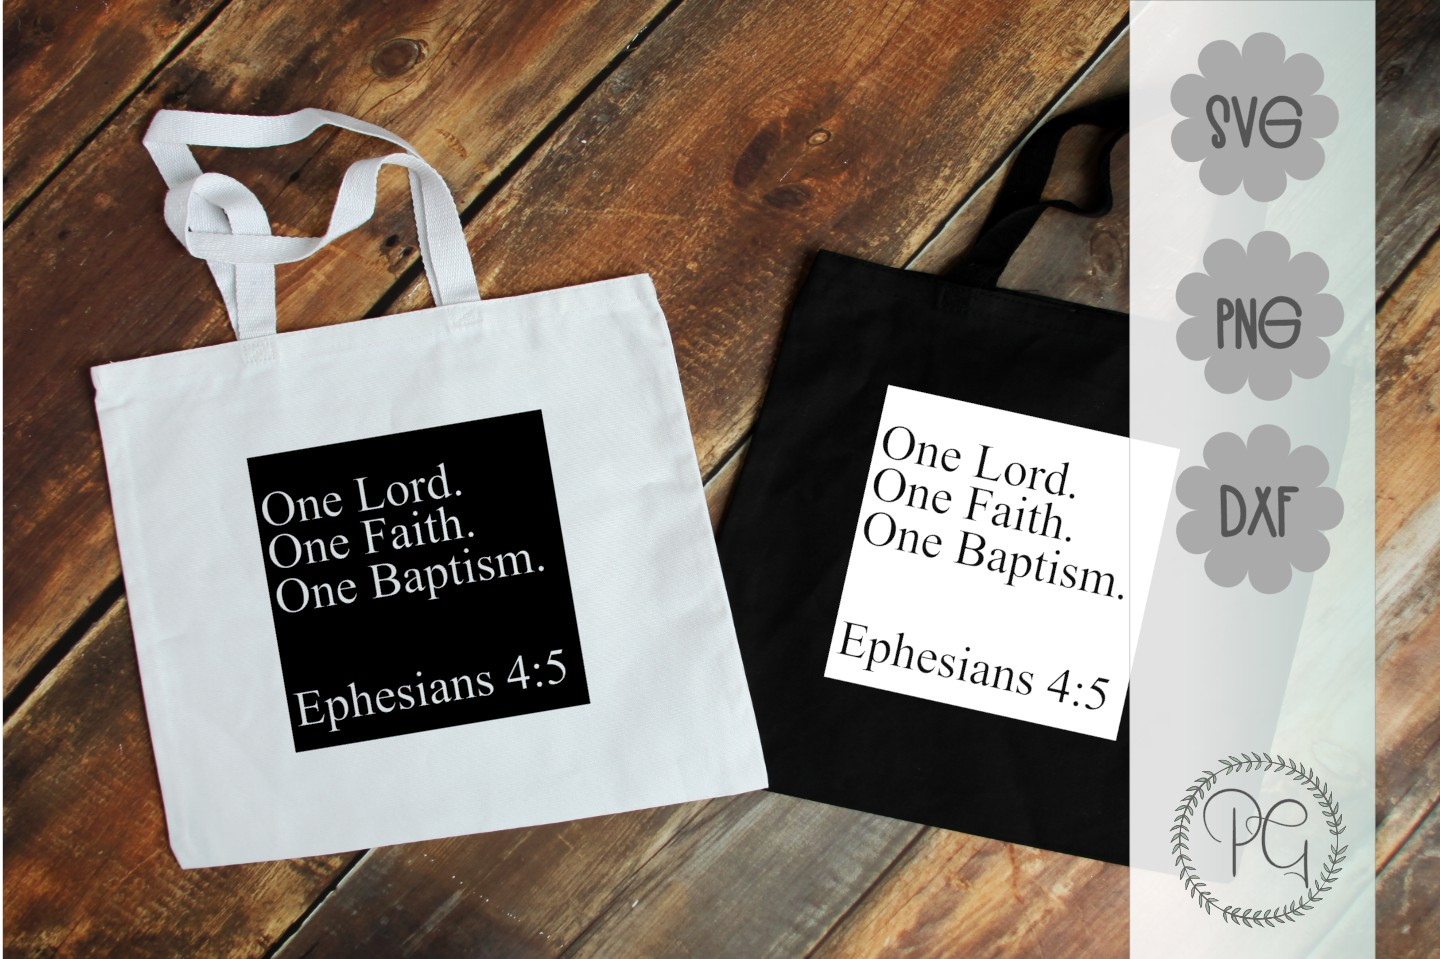 One Lord One Faith One Baptism SVG DXF PNG example image 3